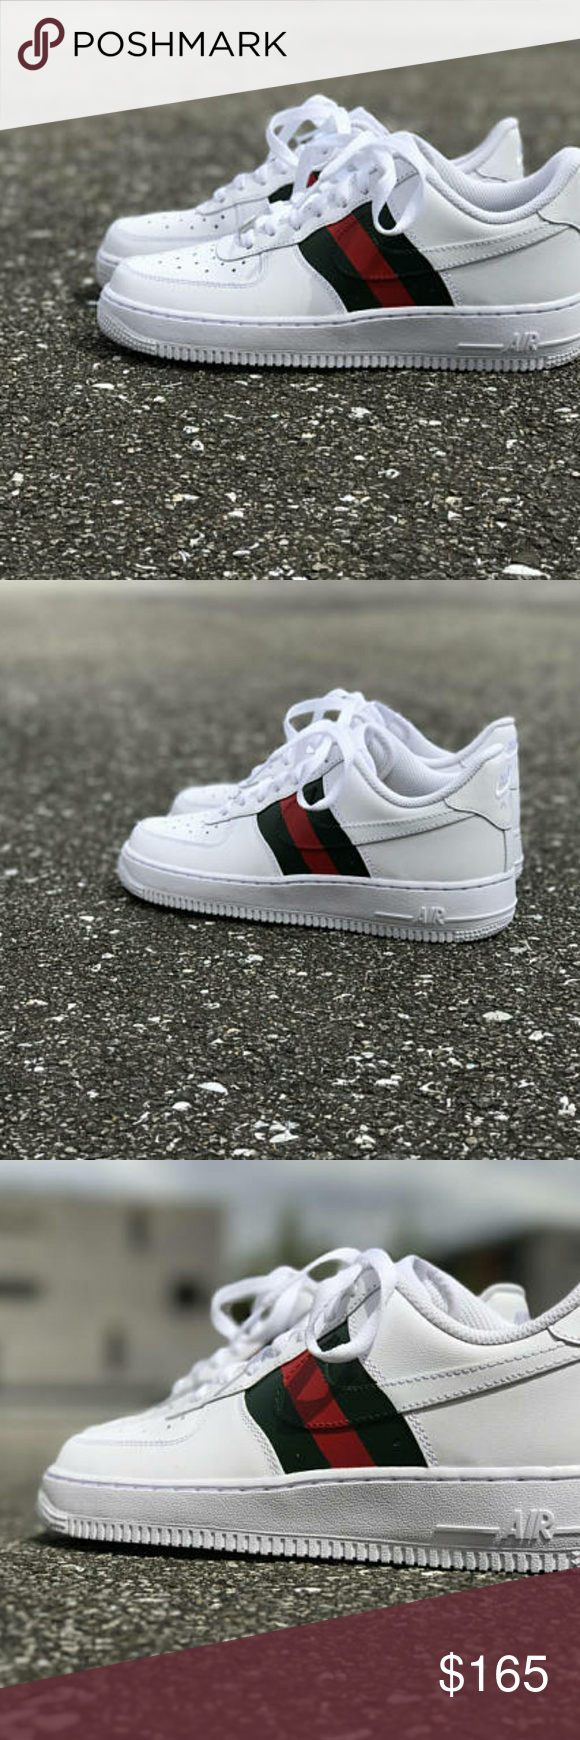 95672ecf296e Gucci x nike air force one custom brand new Gucci x nike air force one custom  brand new with box multiple sizes avalible Jordan Shoes Sneakers